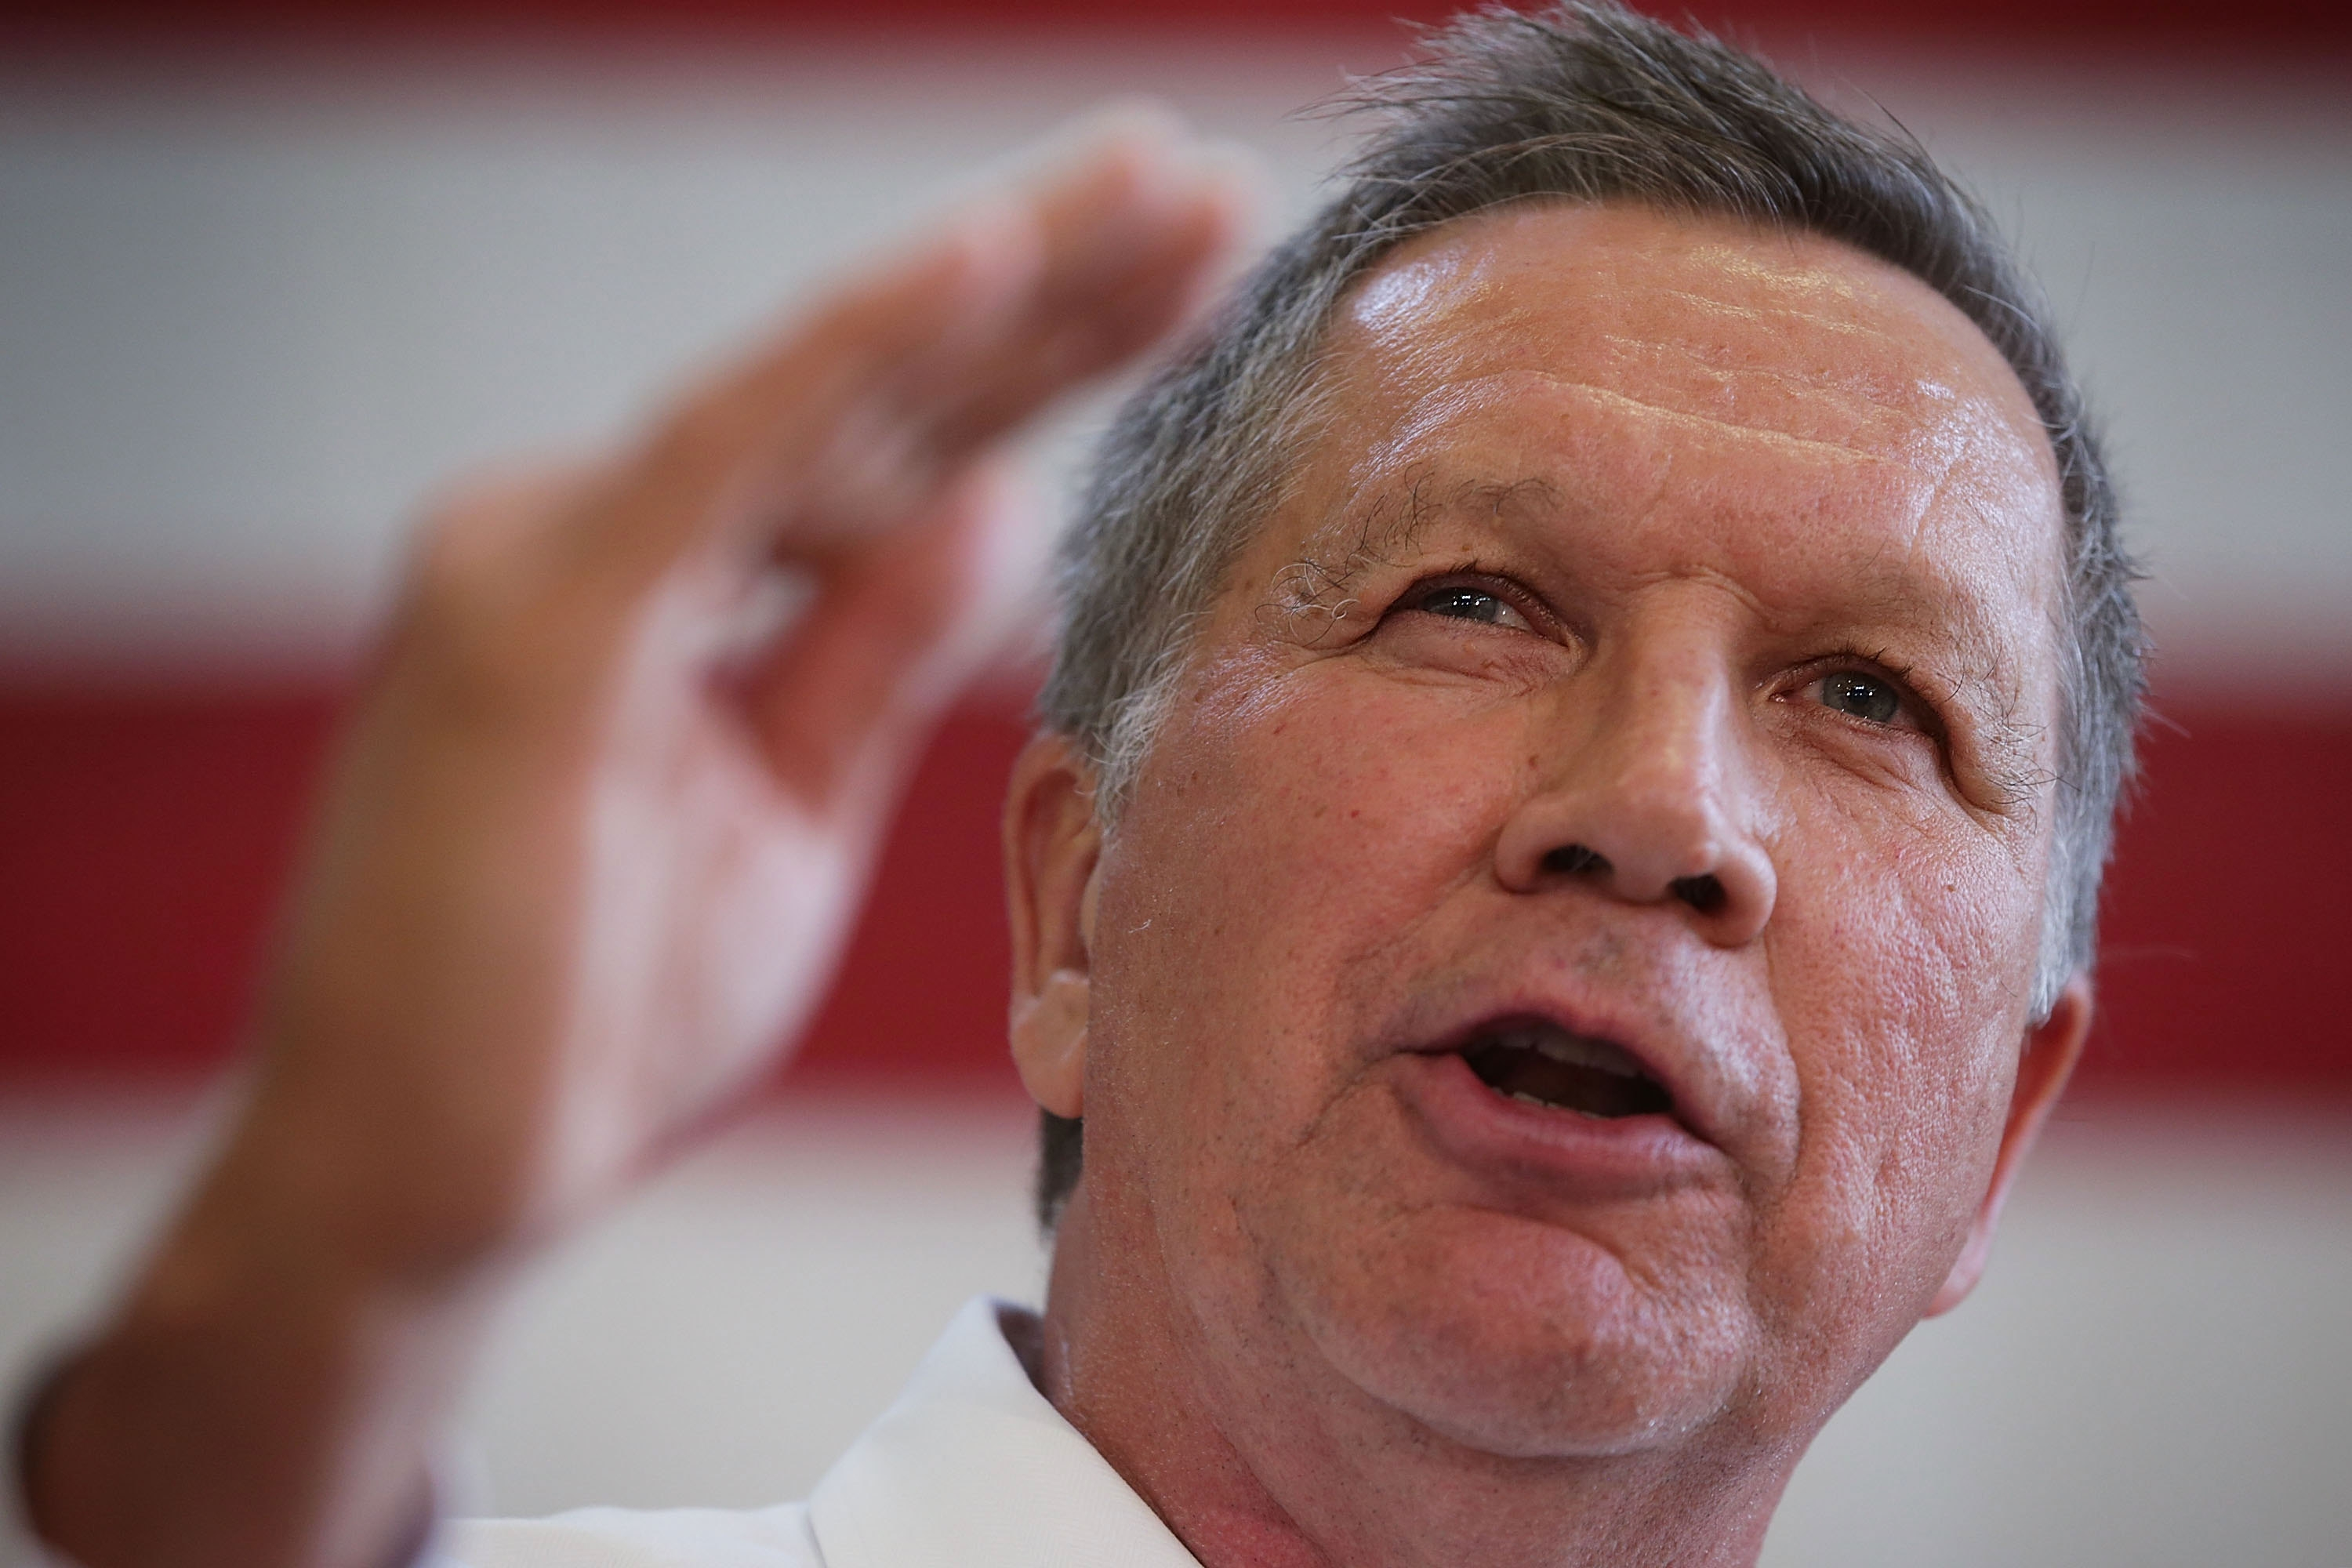 Republican presidential candidate and Ohio Governor John Kasich speaks during a campaign event on April 25, 2016, in Rockville, Md. (Getty Images)